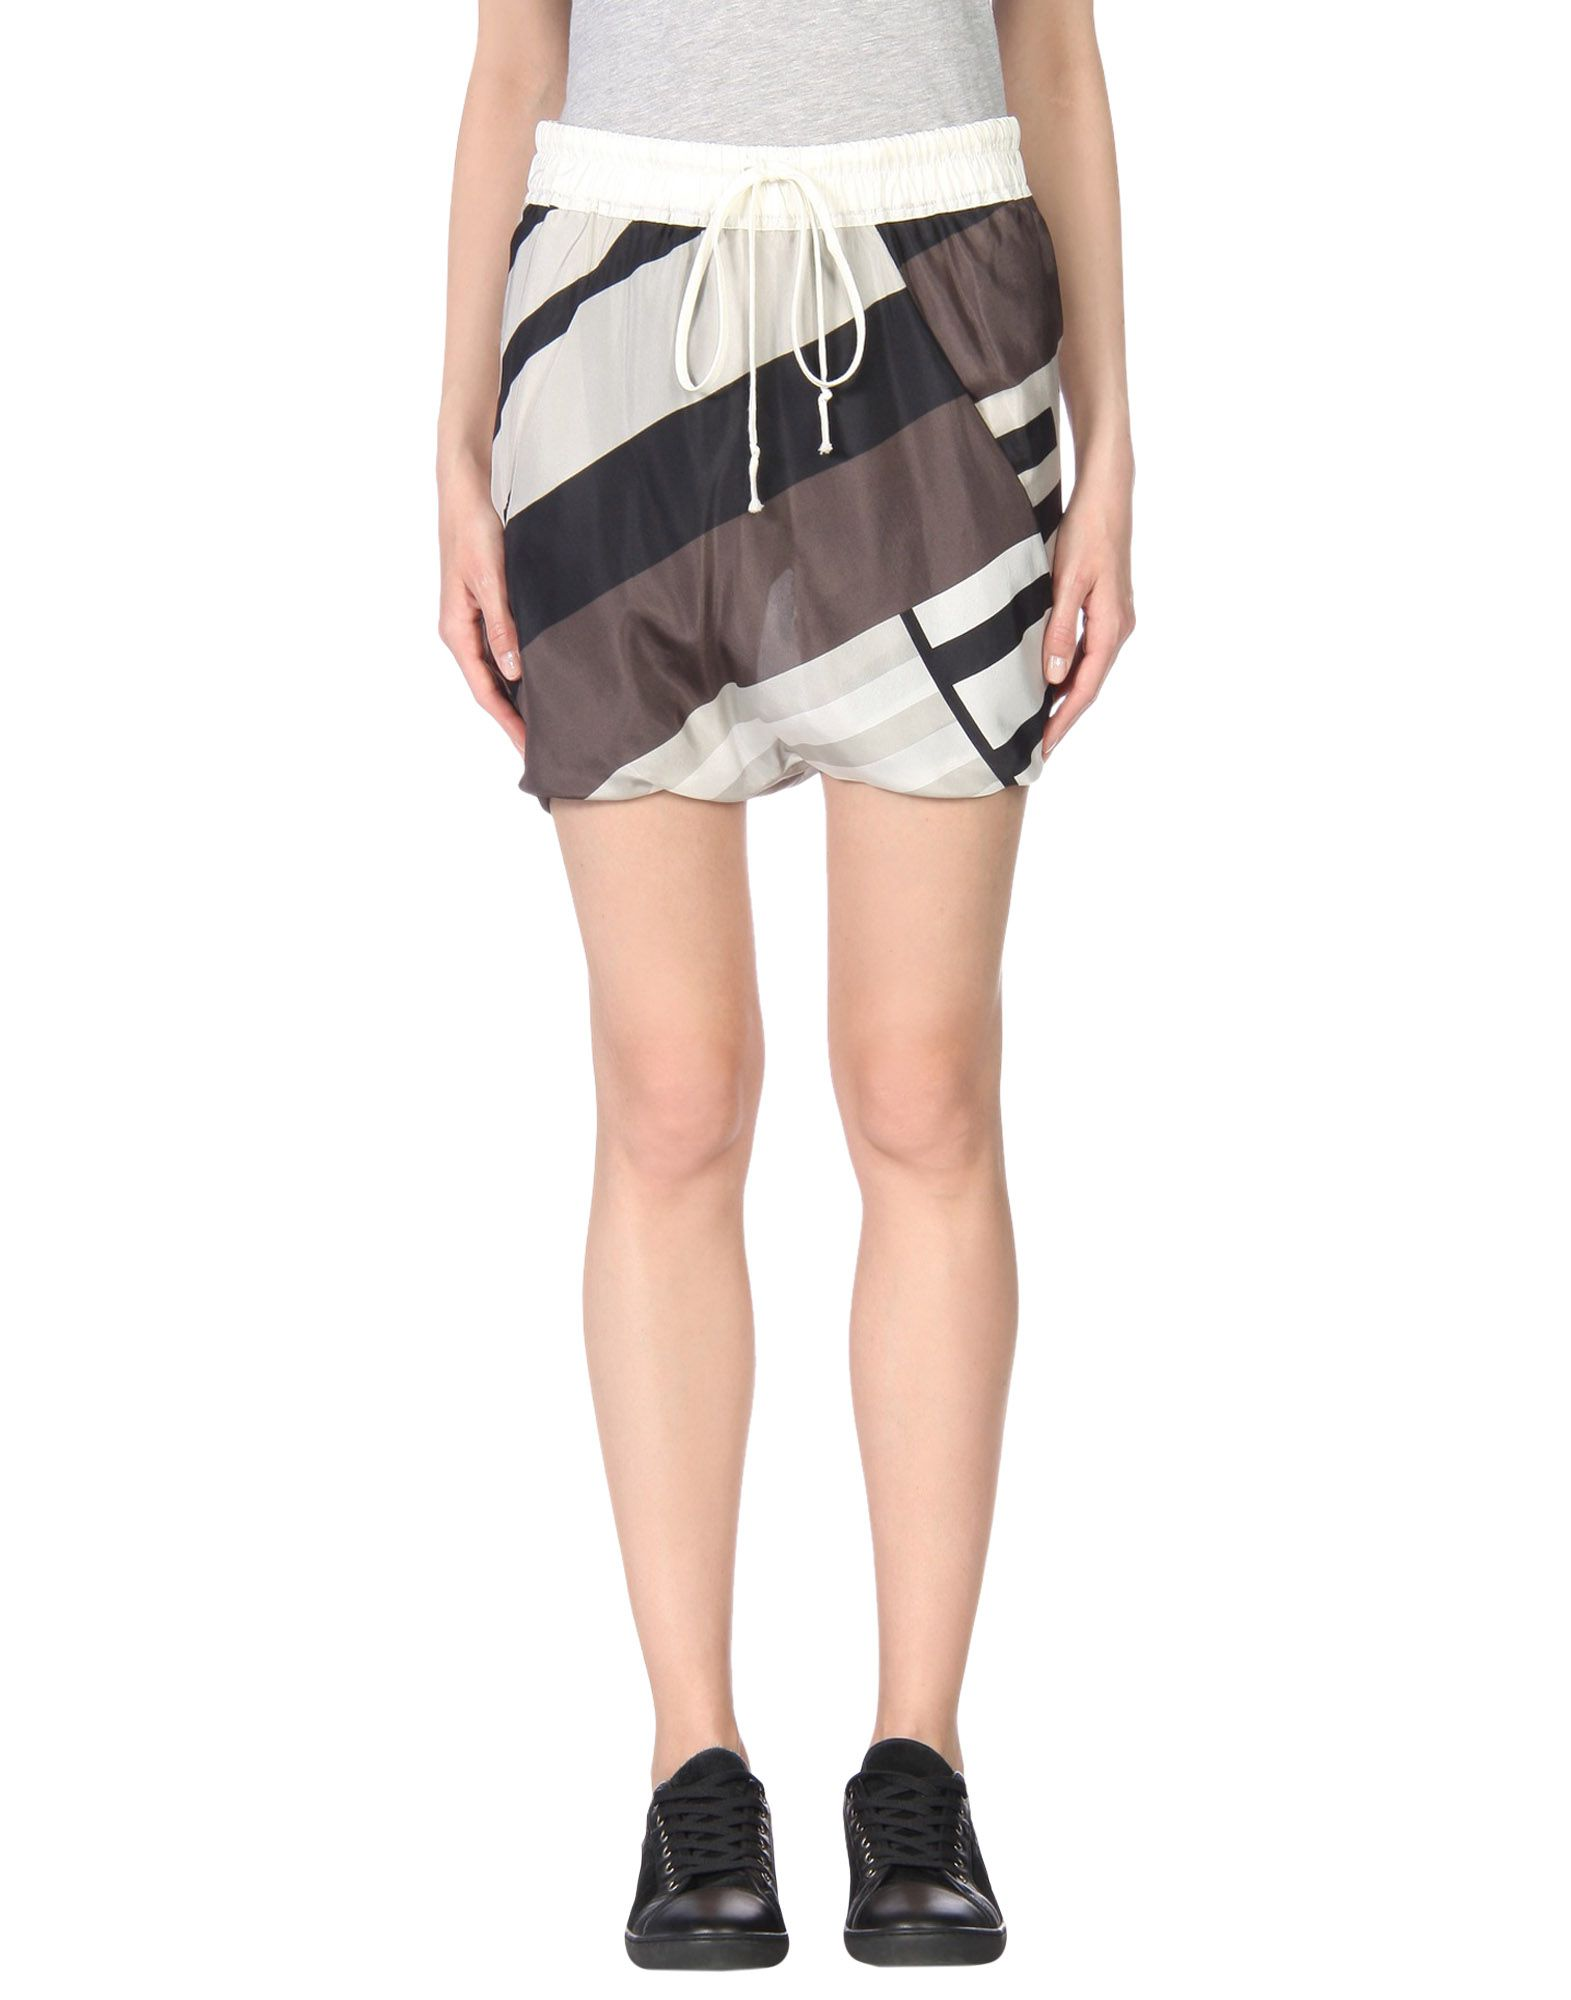 RICK OWENS Mini skirts. satin, multicolor pattern, no appliqués, drawstring closure, lined interior, multipockets, front closure, divided skirt. 100% Silk